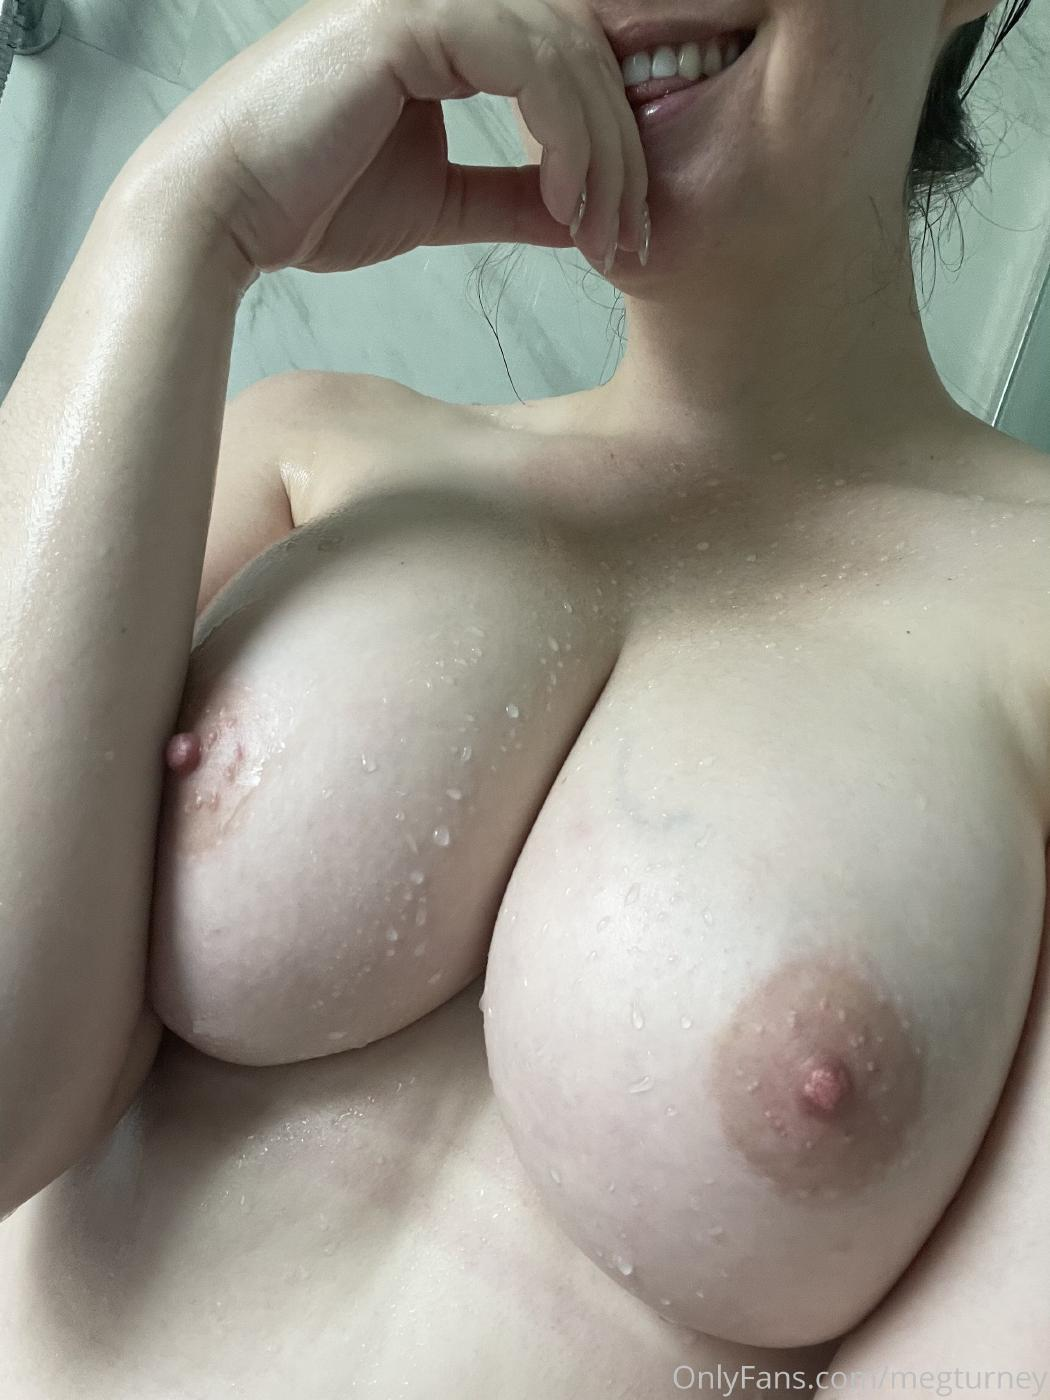 Meg Turney Extra Spicy Shower Candid Onlyfans Set Leaked 0008